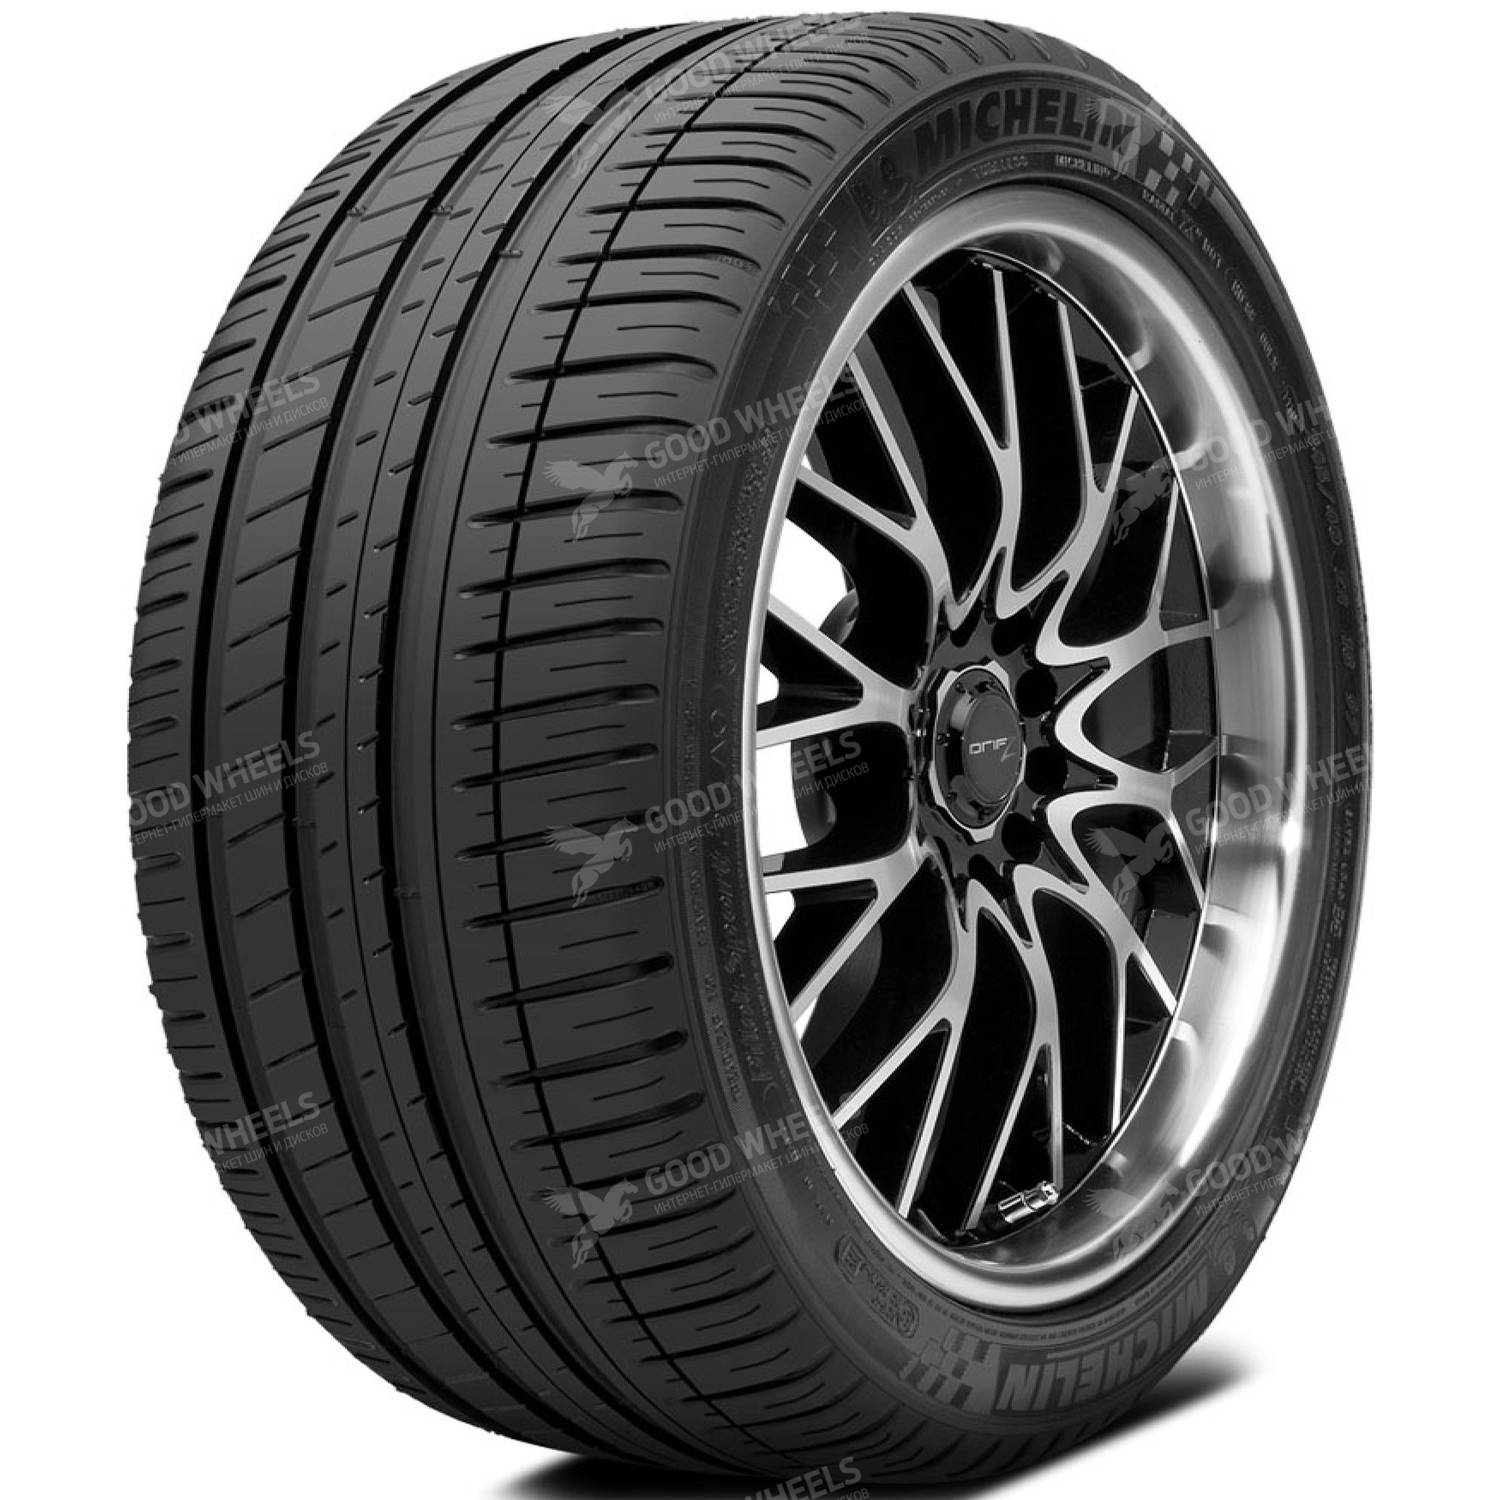 Michelin Pilot Sport 3 (PS3) 255/35 R19 96Y